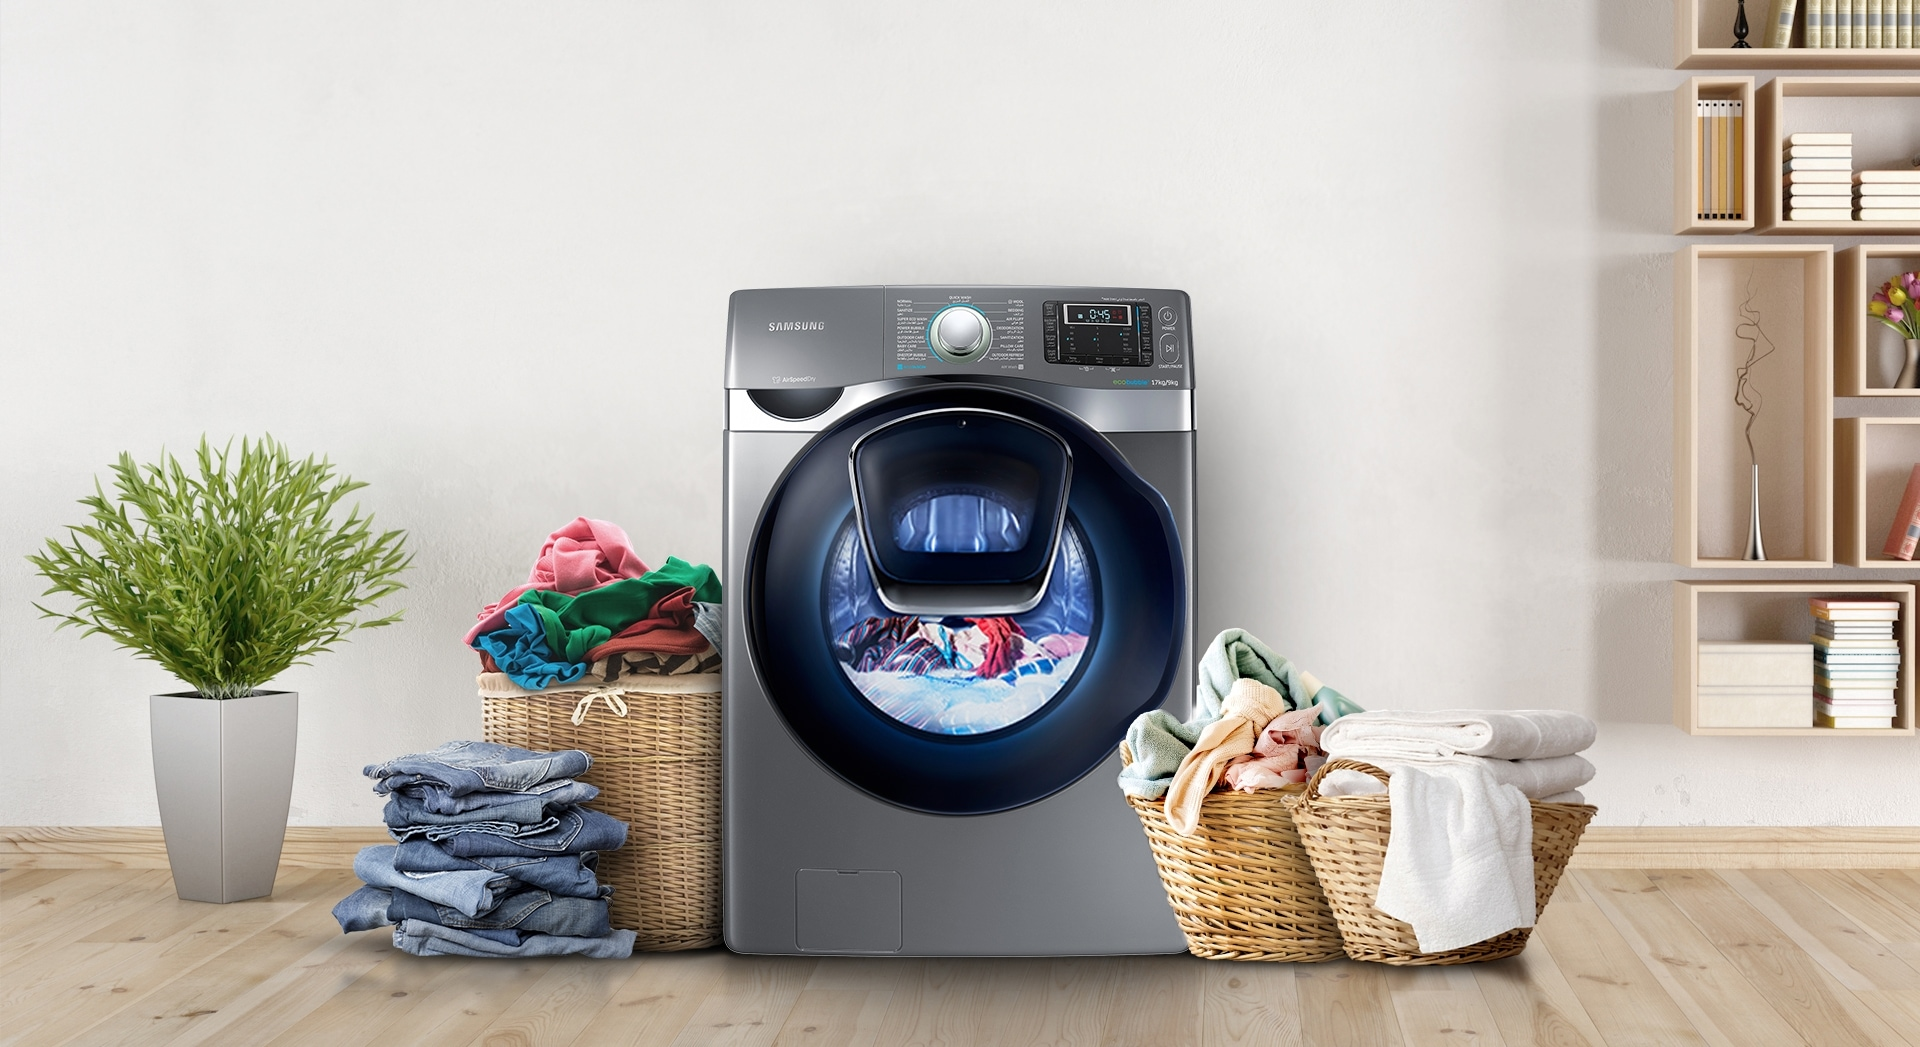 An image showing the WD9500K Add Wash in a room in a house. Beside it are three baskets full of laundry and a pile of folded clothes.